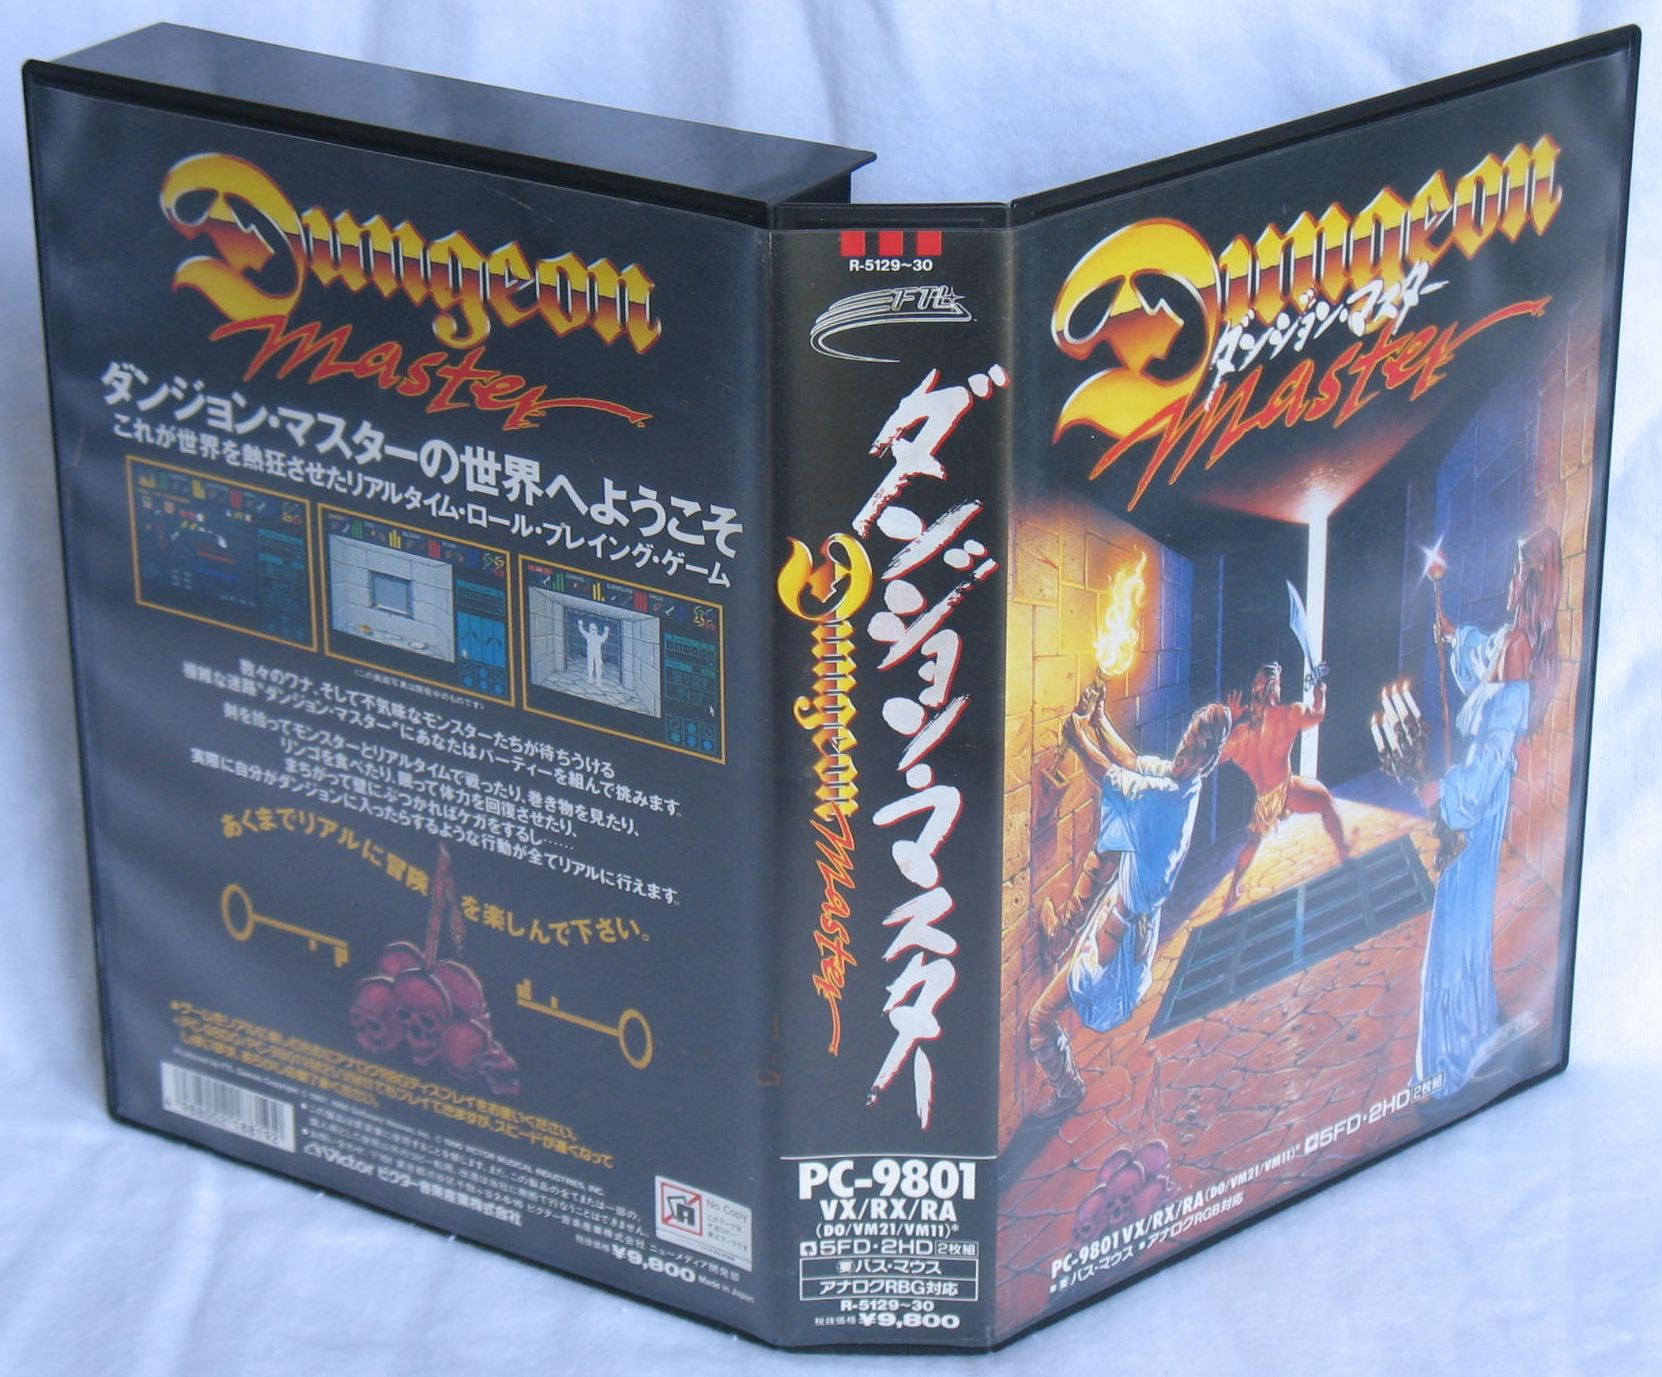 Game - Dungeon Master - JP - PC-9801 - 5.25-inch - Box - Front Back Left Top - Photo